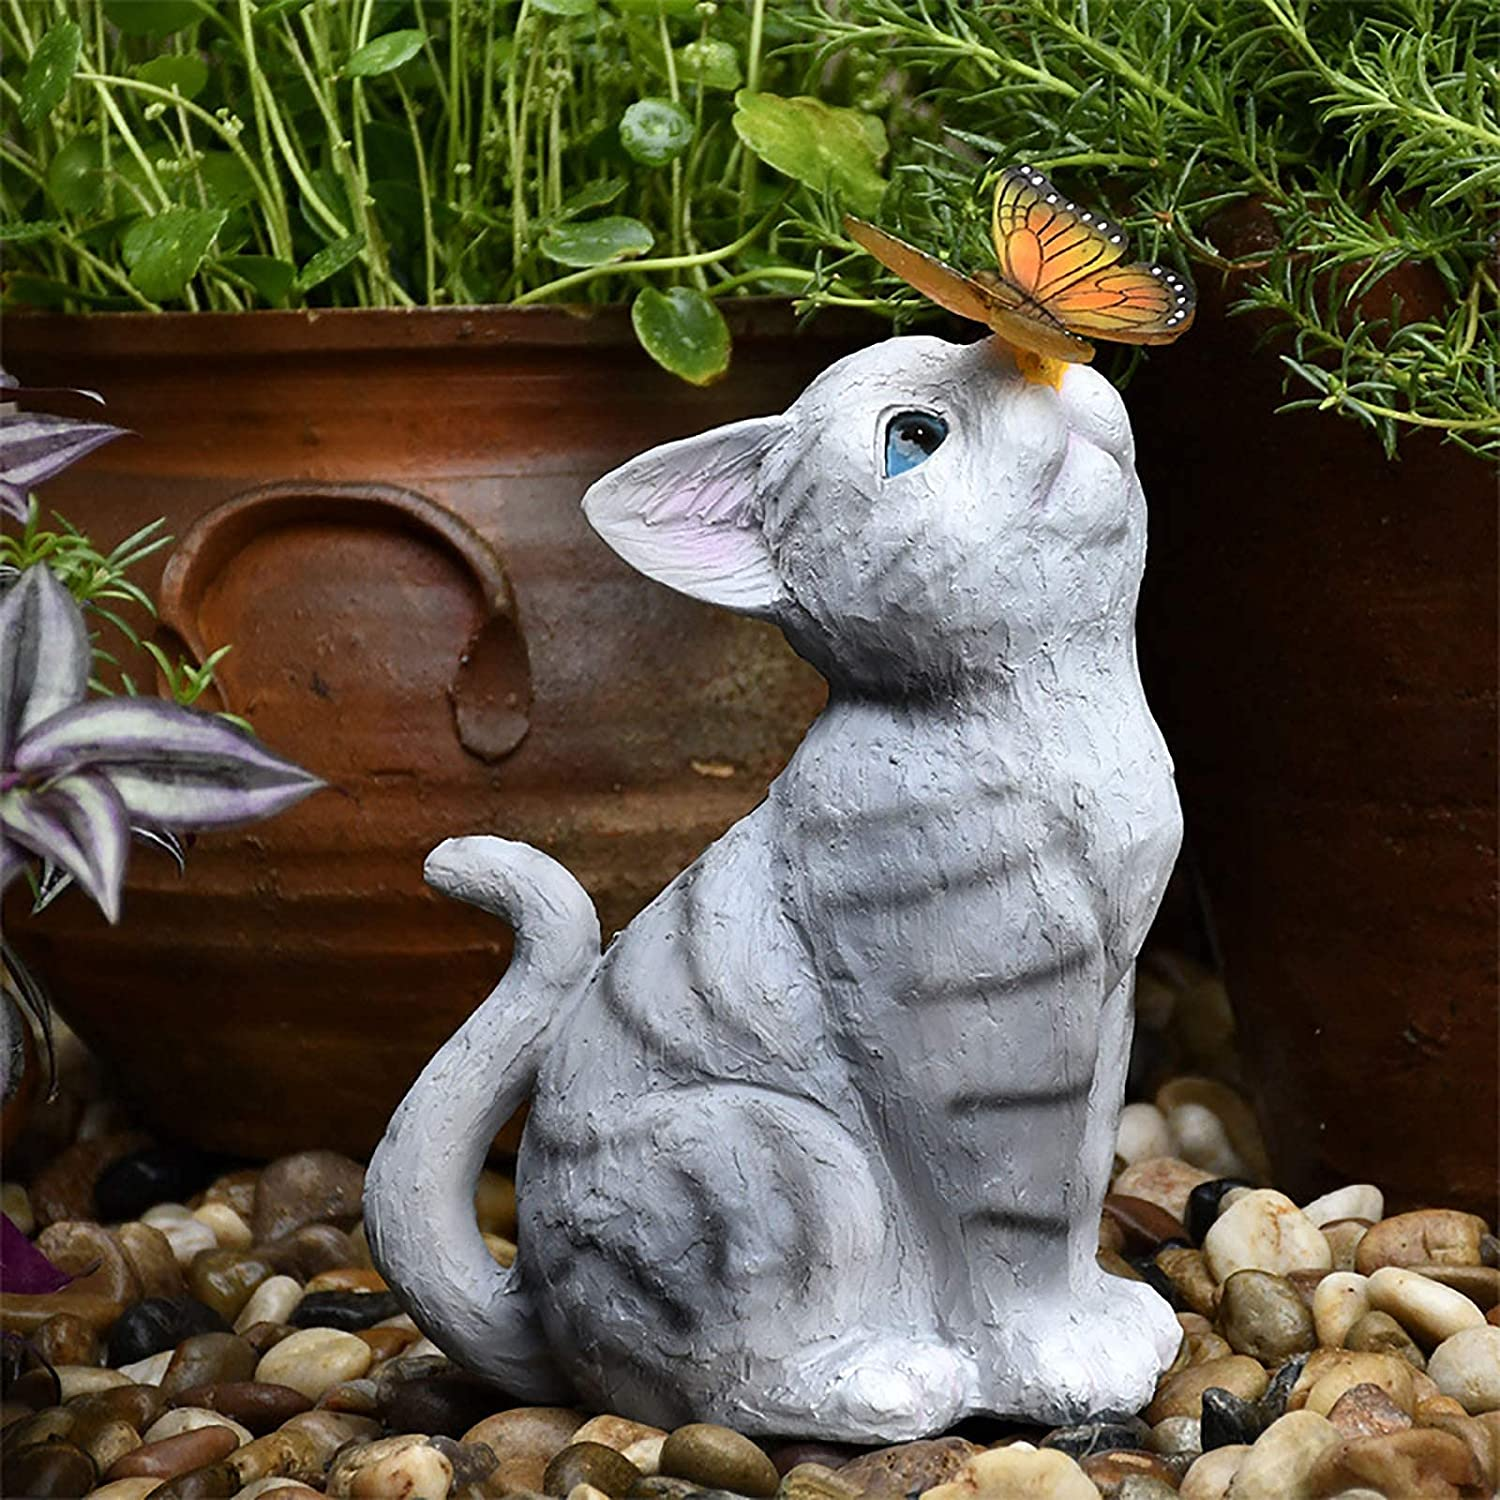 Wyxy Solar Garden Statue, Resin Cute Cat & Butterfly Sculpture Outdoor Garden Ornament with LED Solar Powered for Garden Home Party Yard Lawn Pool Pond Fishing Decor